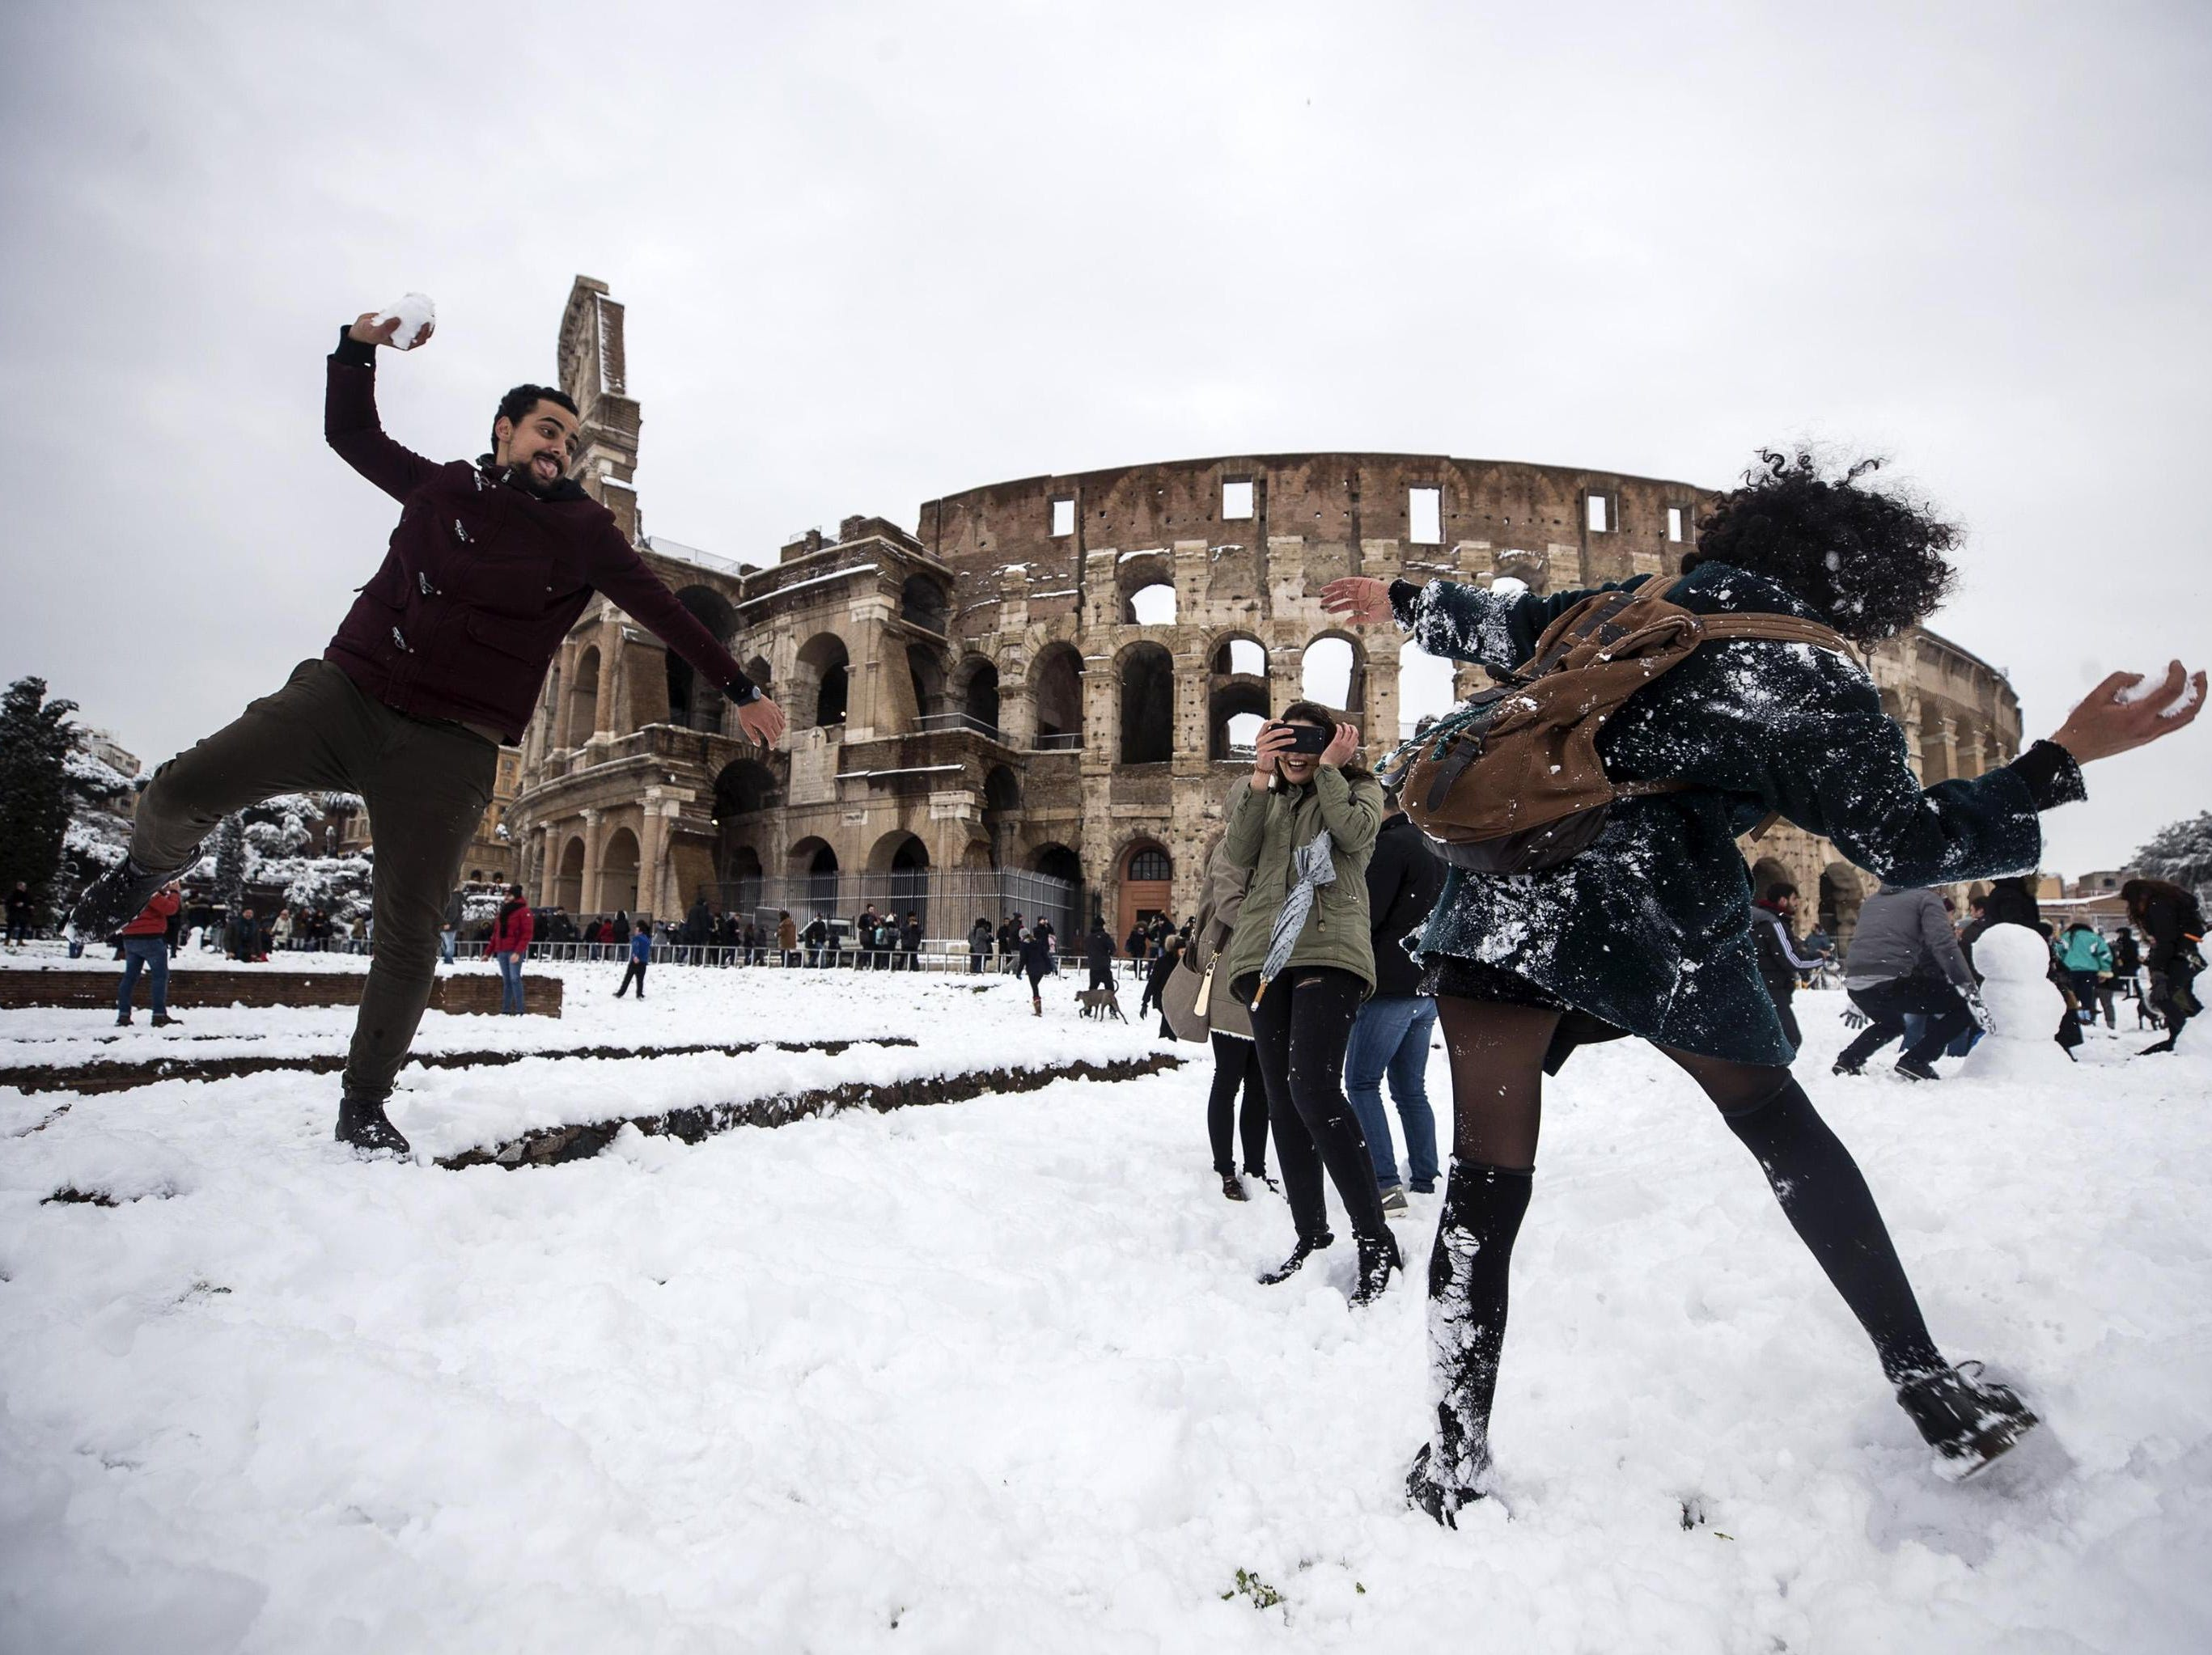 Feb. 26, 2018: People take part in a snowball fight in front of the Colosseum covered by snow during a snowfall in Rome, Italy.